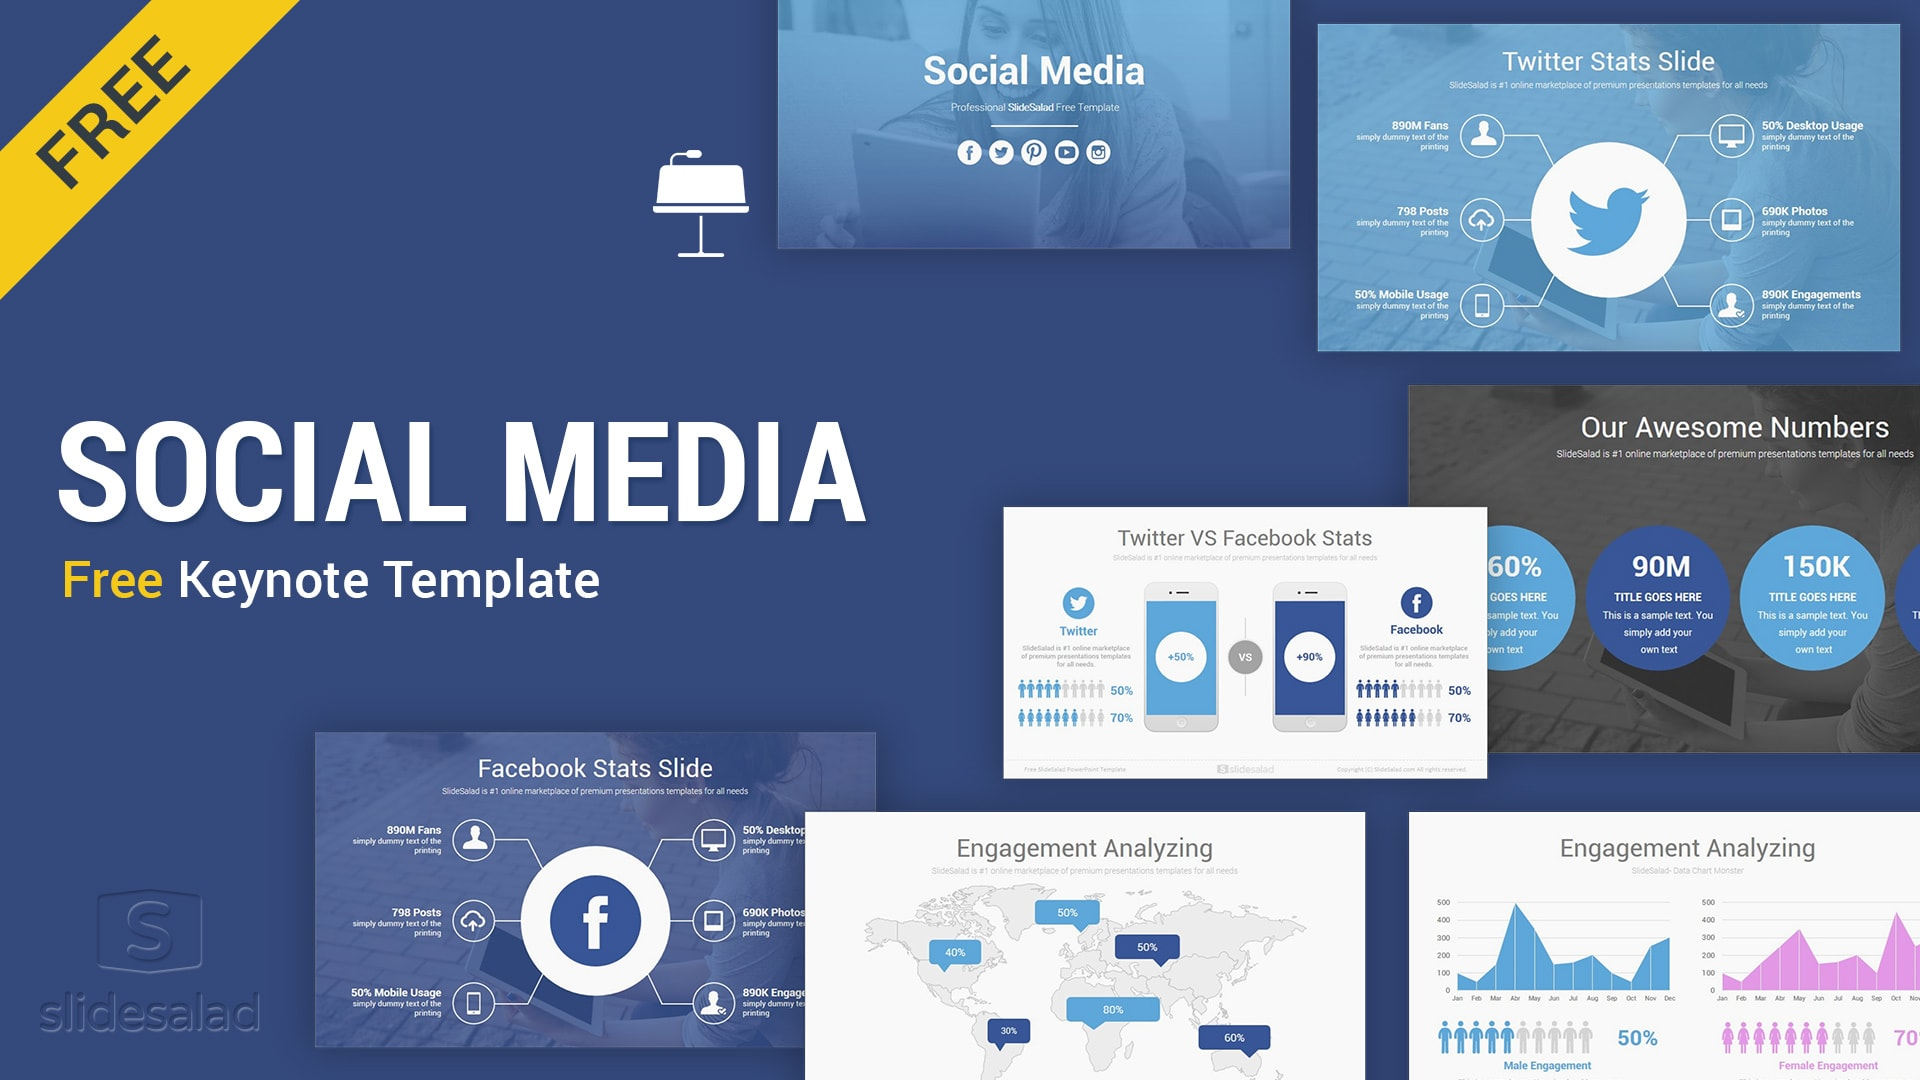 Large collection free keynote templates for mac users for business, marketing, education. Social Media Free Keynote Template Slides Slidesalad